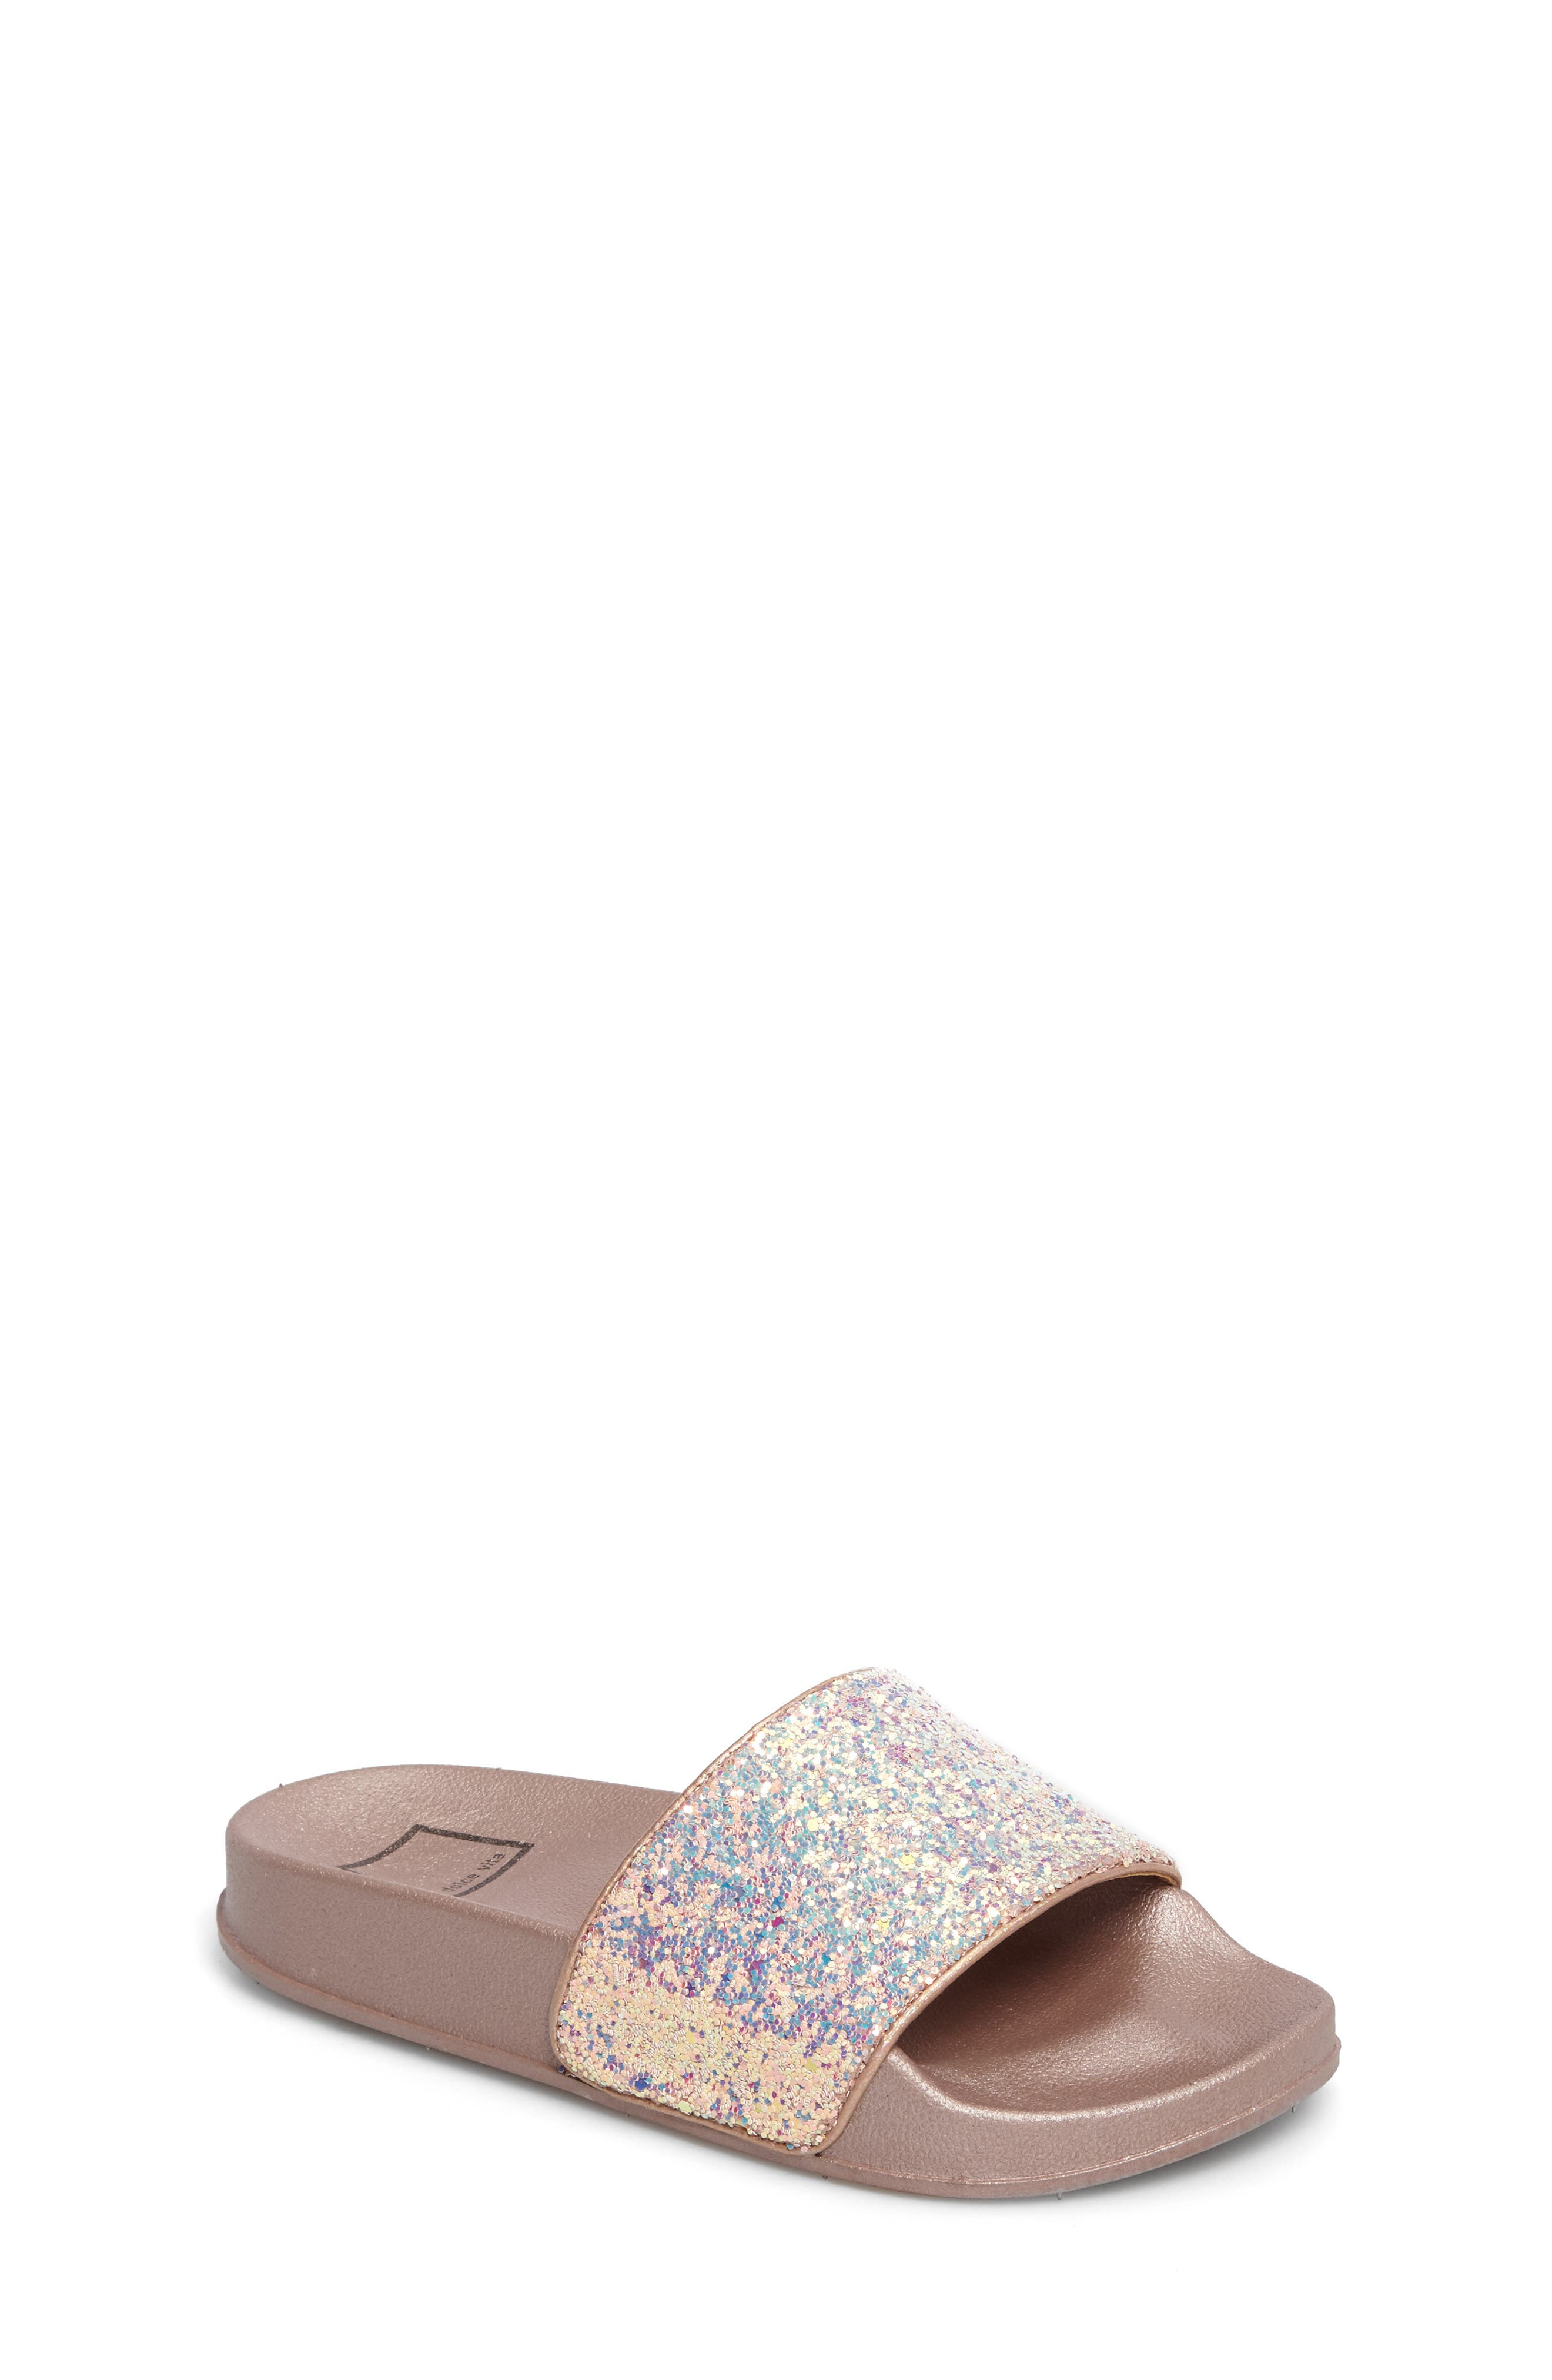 Dolce Vita Shorty Glittery Pool Slide (Toddler, Little Kid & Big Kid)